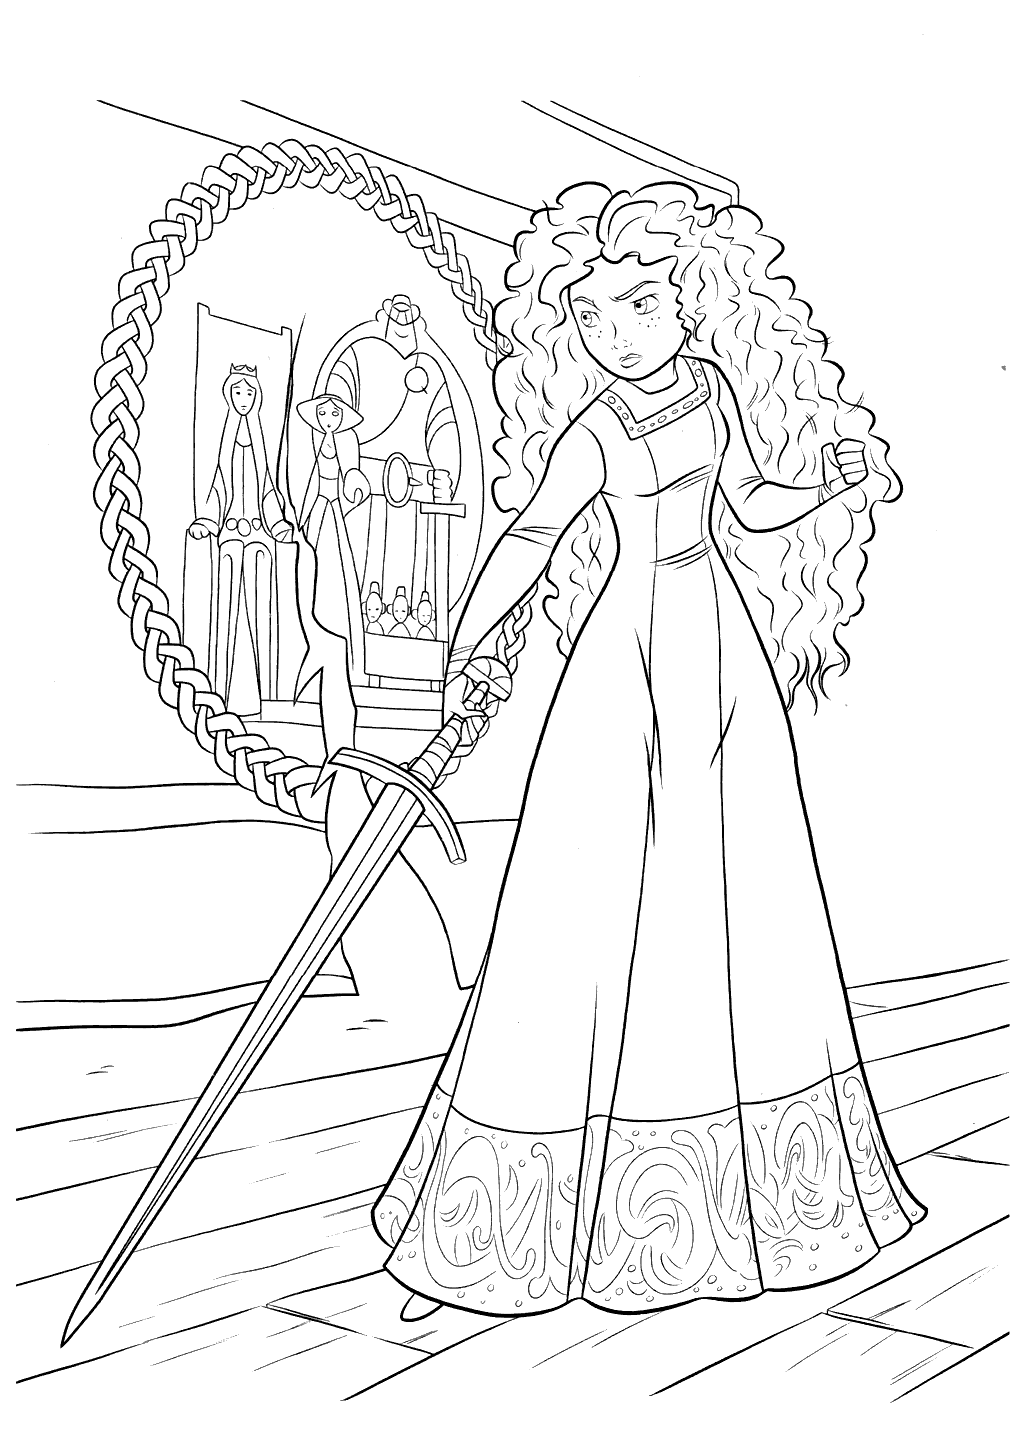 Brave To Print Brave Kids Coloring Pages